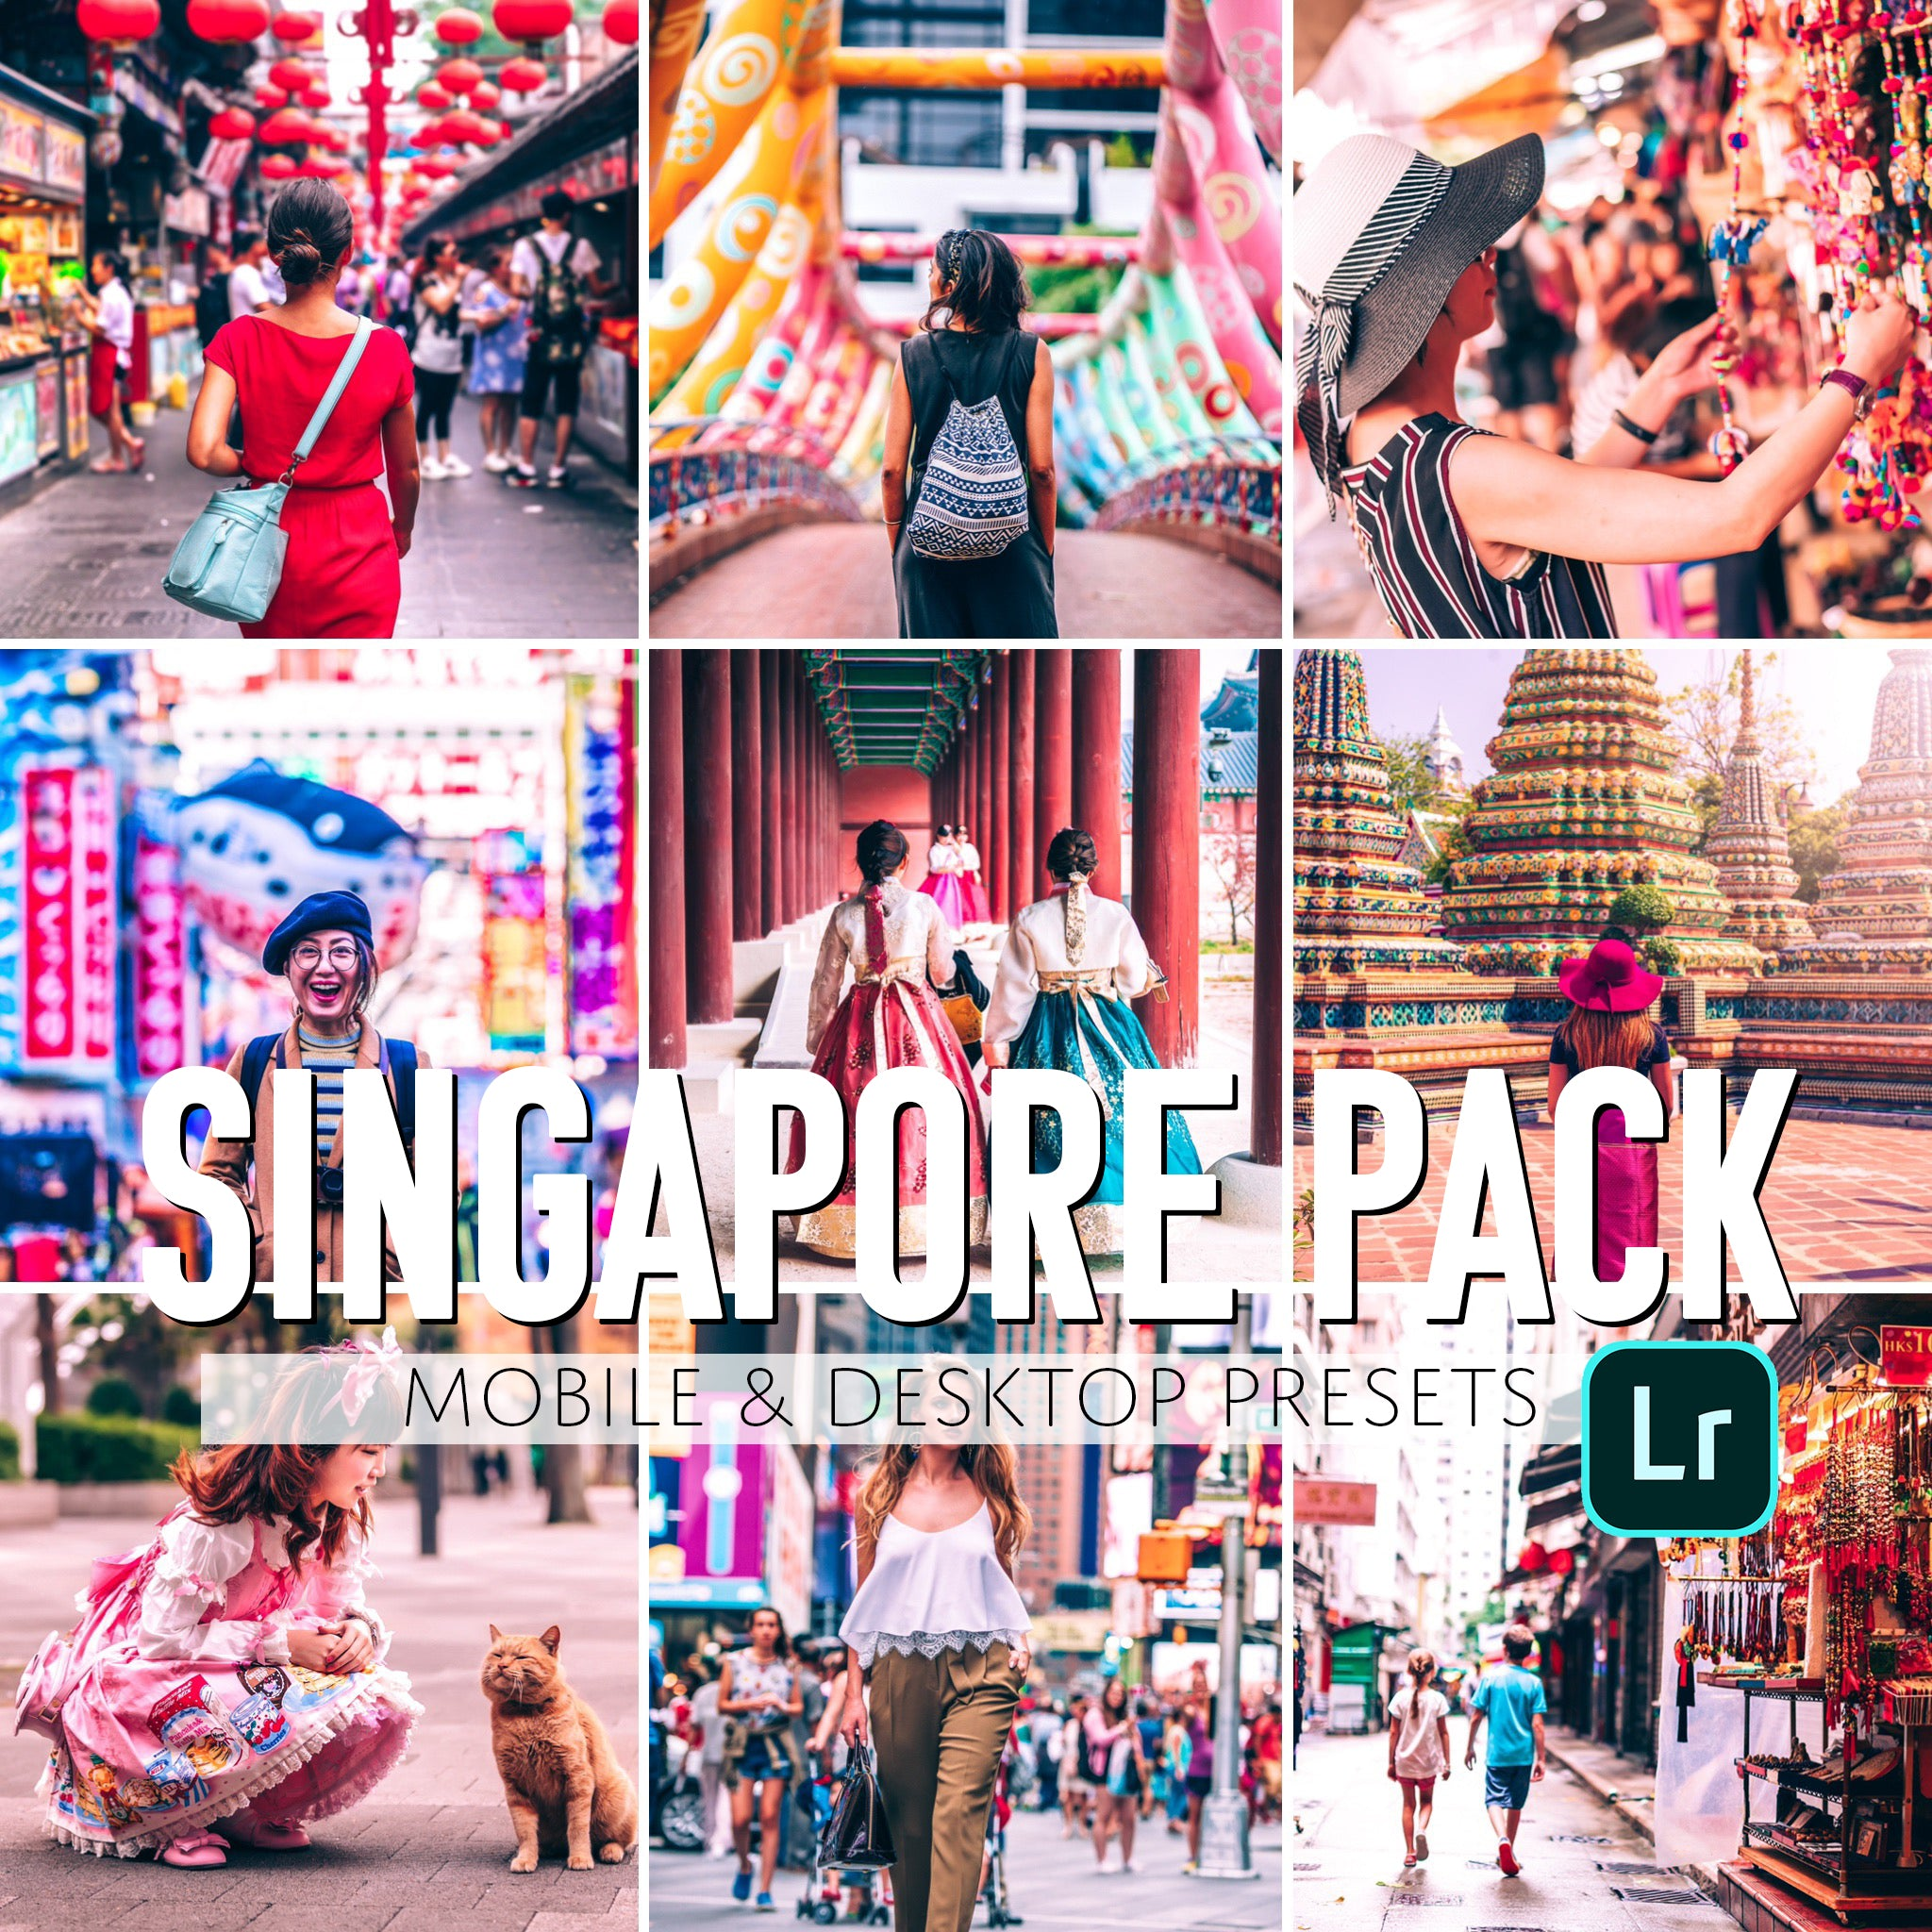 Singapore Mobile & Desktop Presets